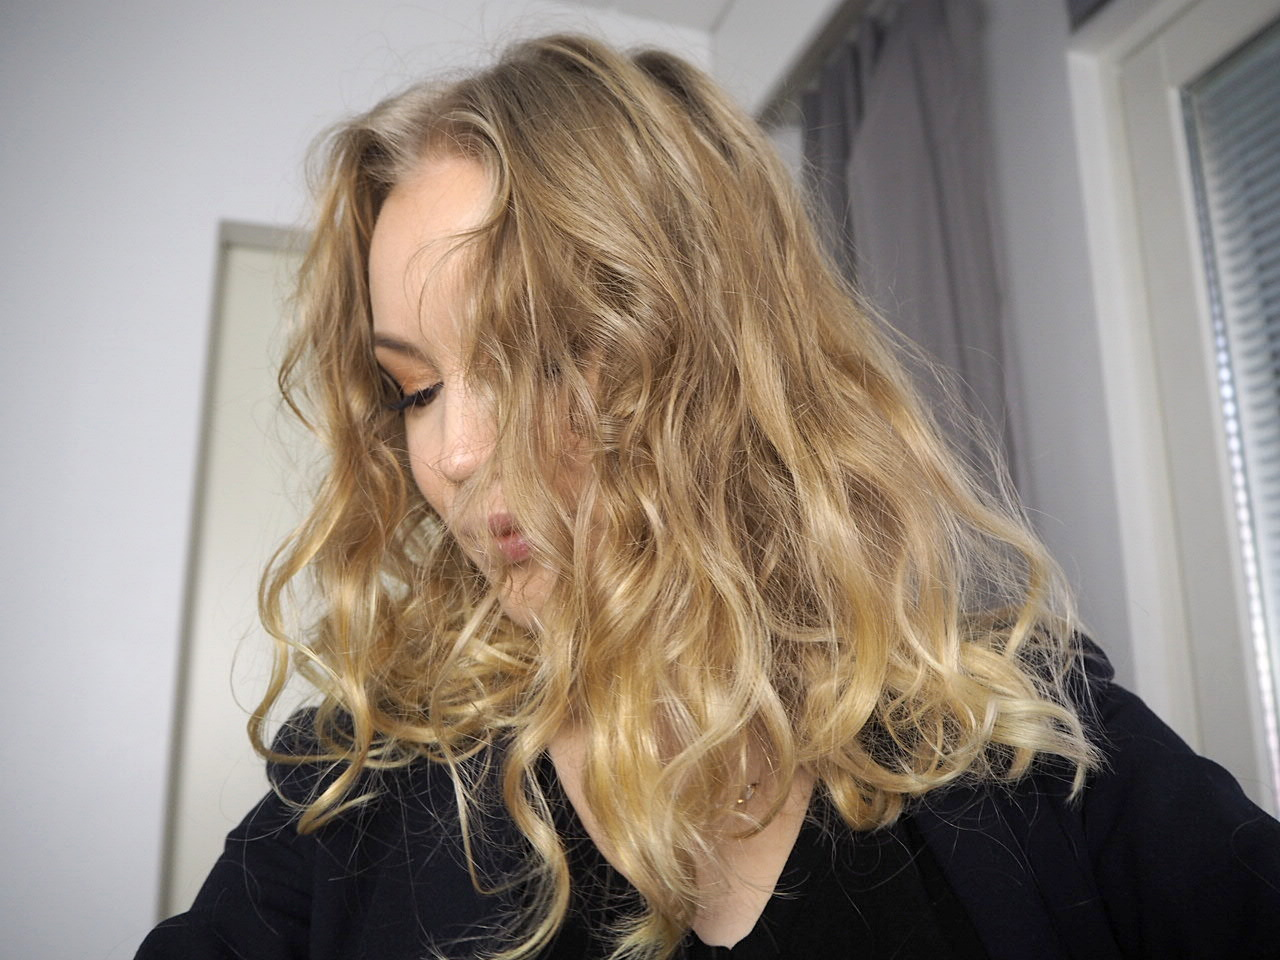 naturally curly hair diffuser